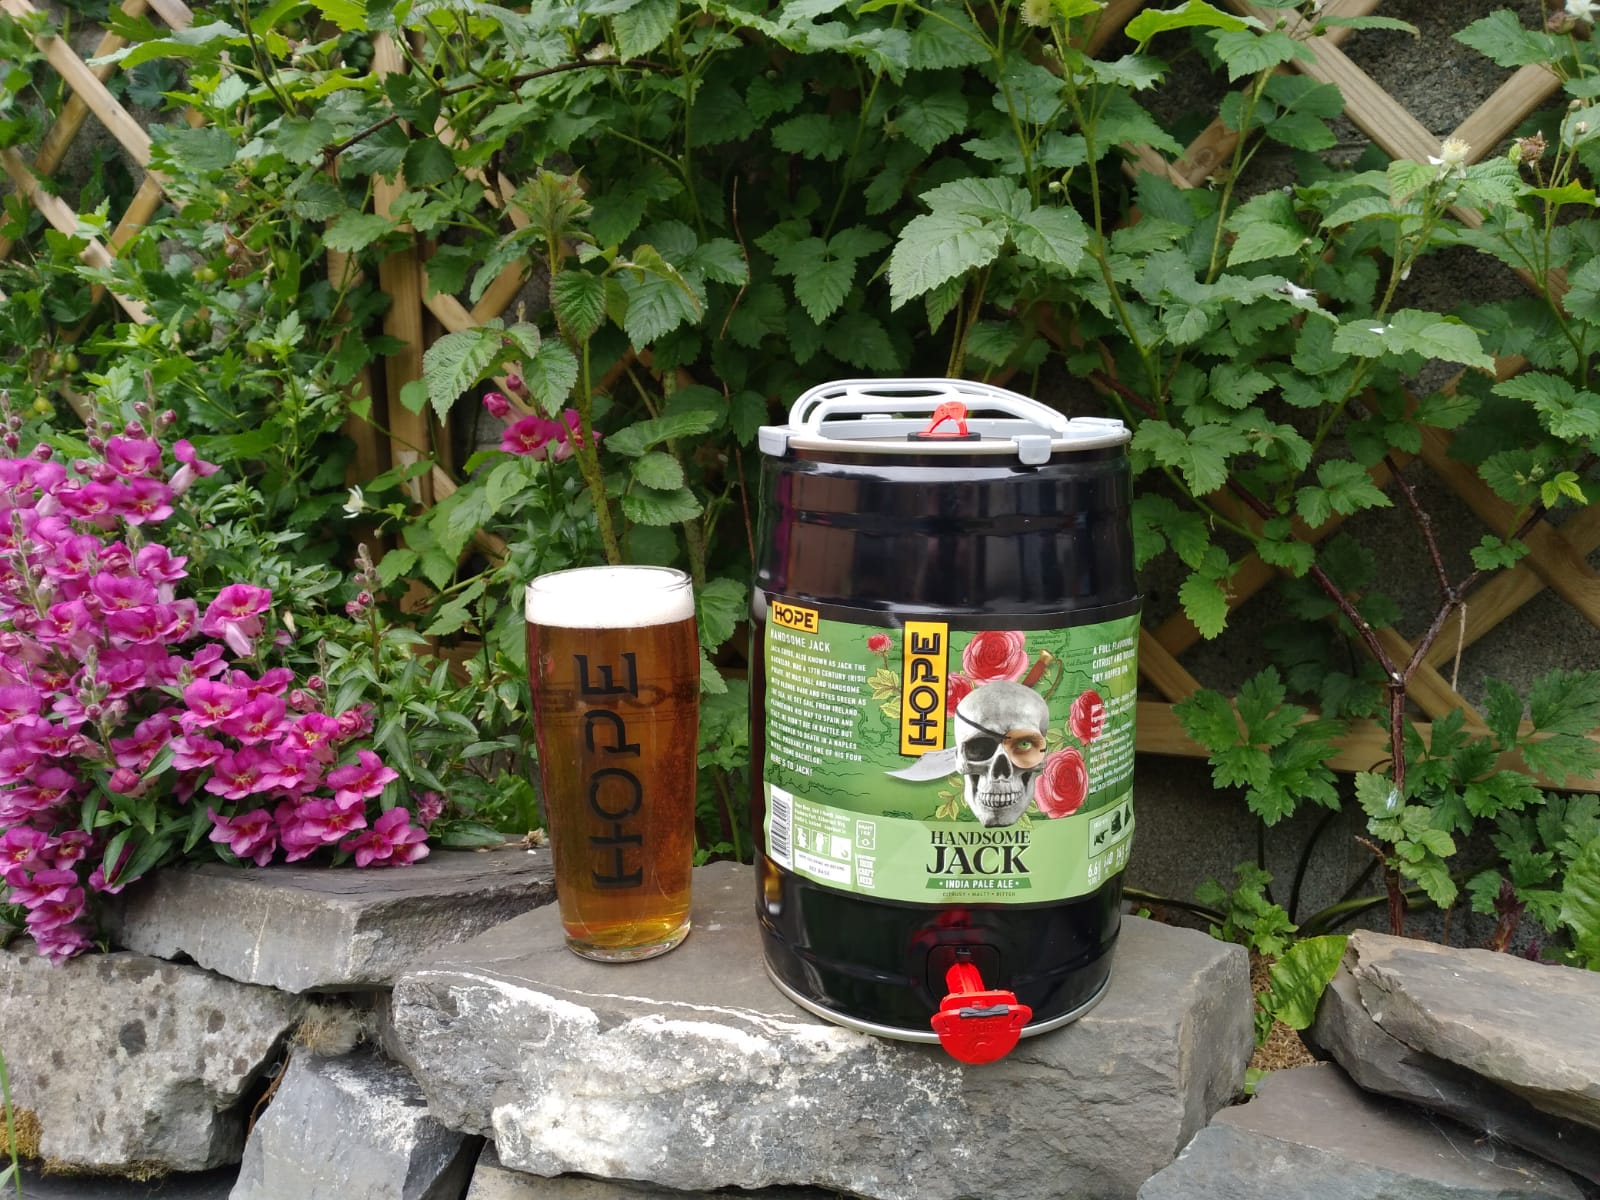 Hope Beer Handsome Jack IPA 6.6% ABV 5 Litre Mini Keg